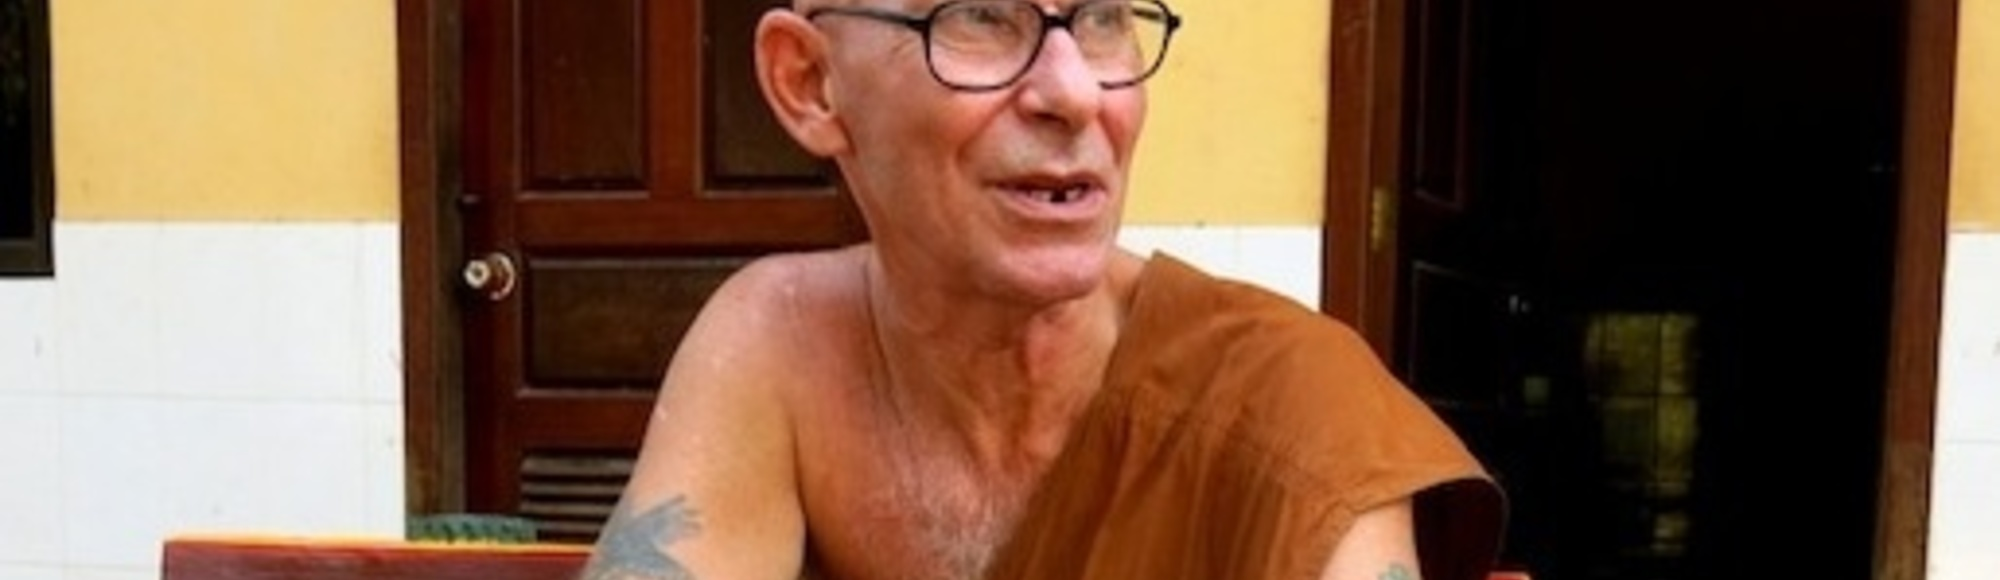 From Heroin Addict to Nirvana: A Eulogy to the British Monk I Met Months Before He Died